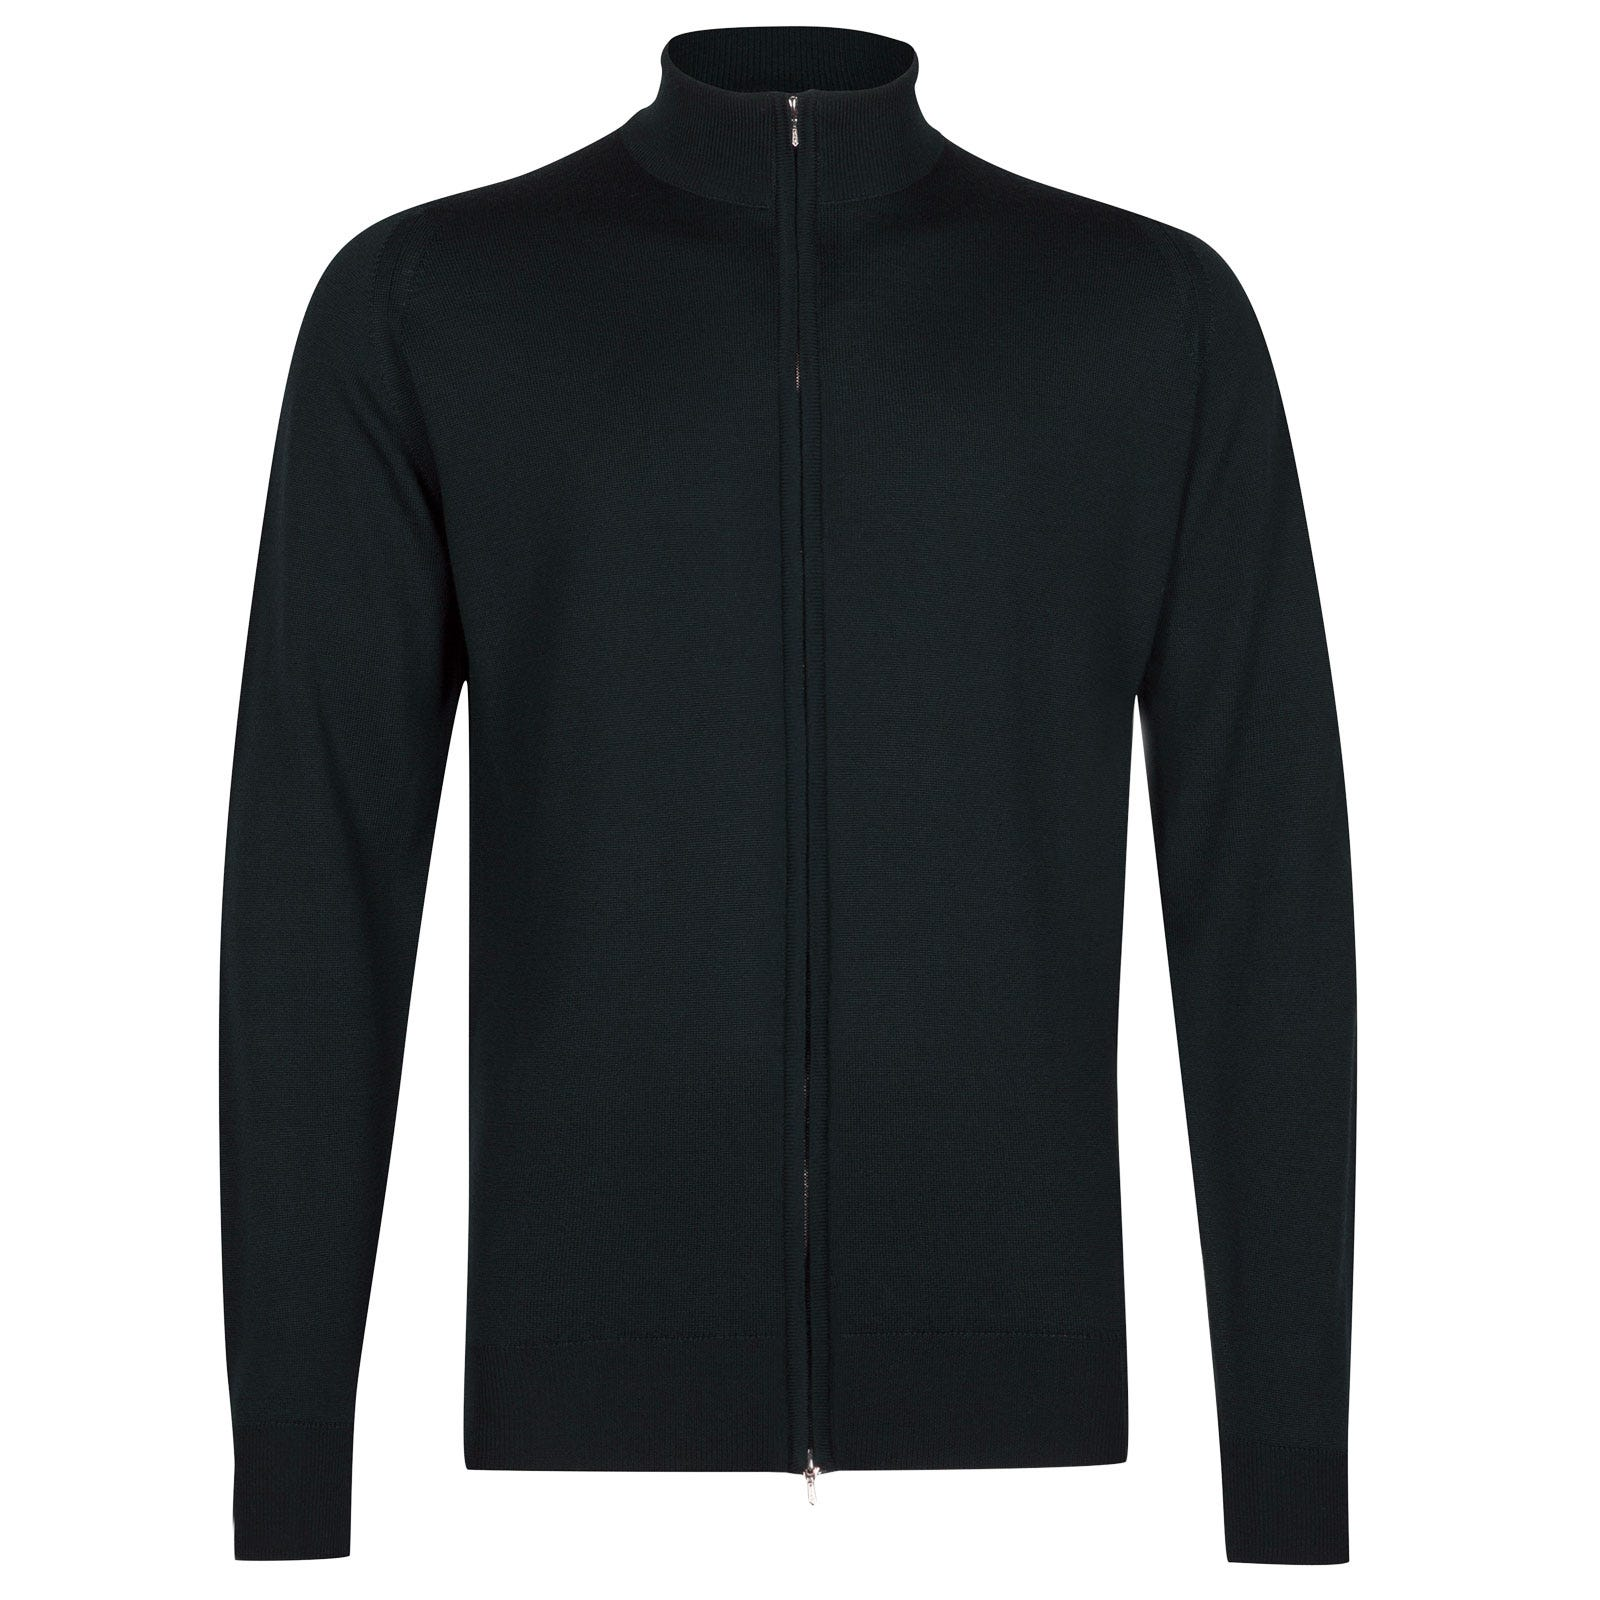 John Smedley claygate Merino Wool Jacket in Racing Green-M